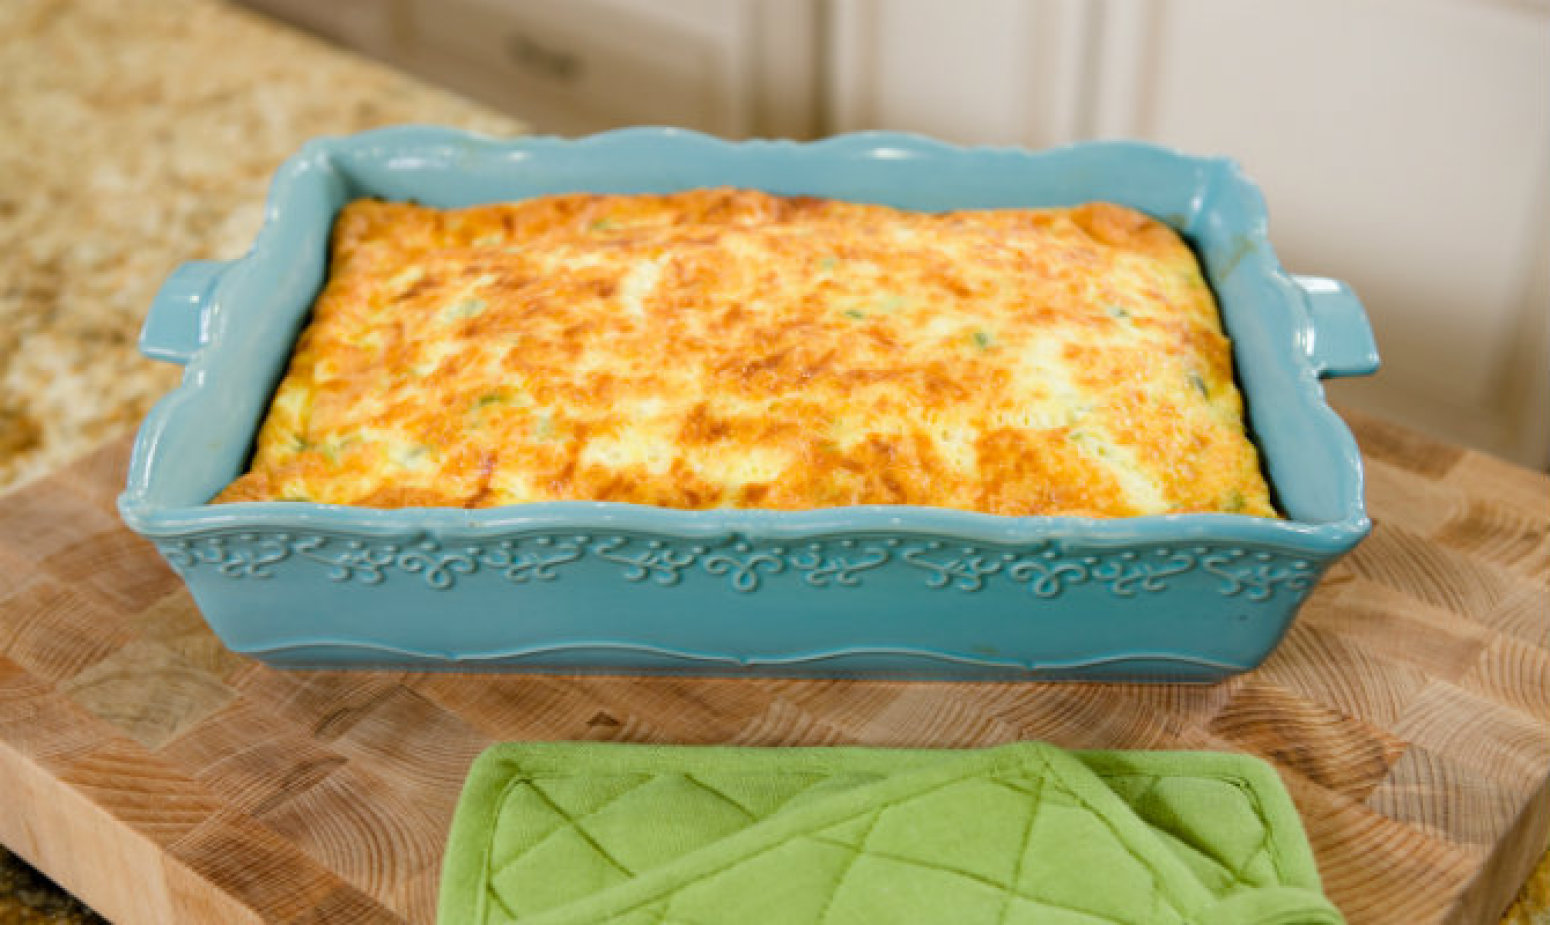 chili cheese egg bake recipe just a pinch recipes